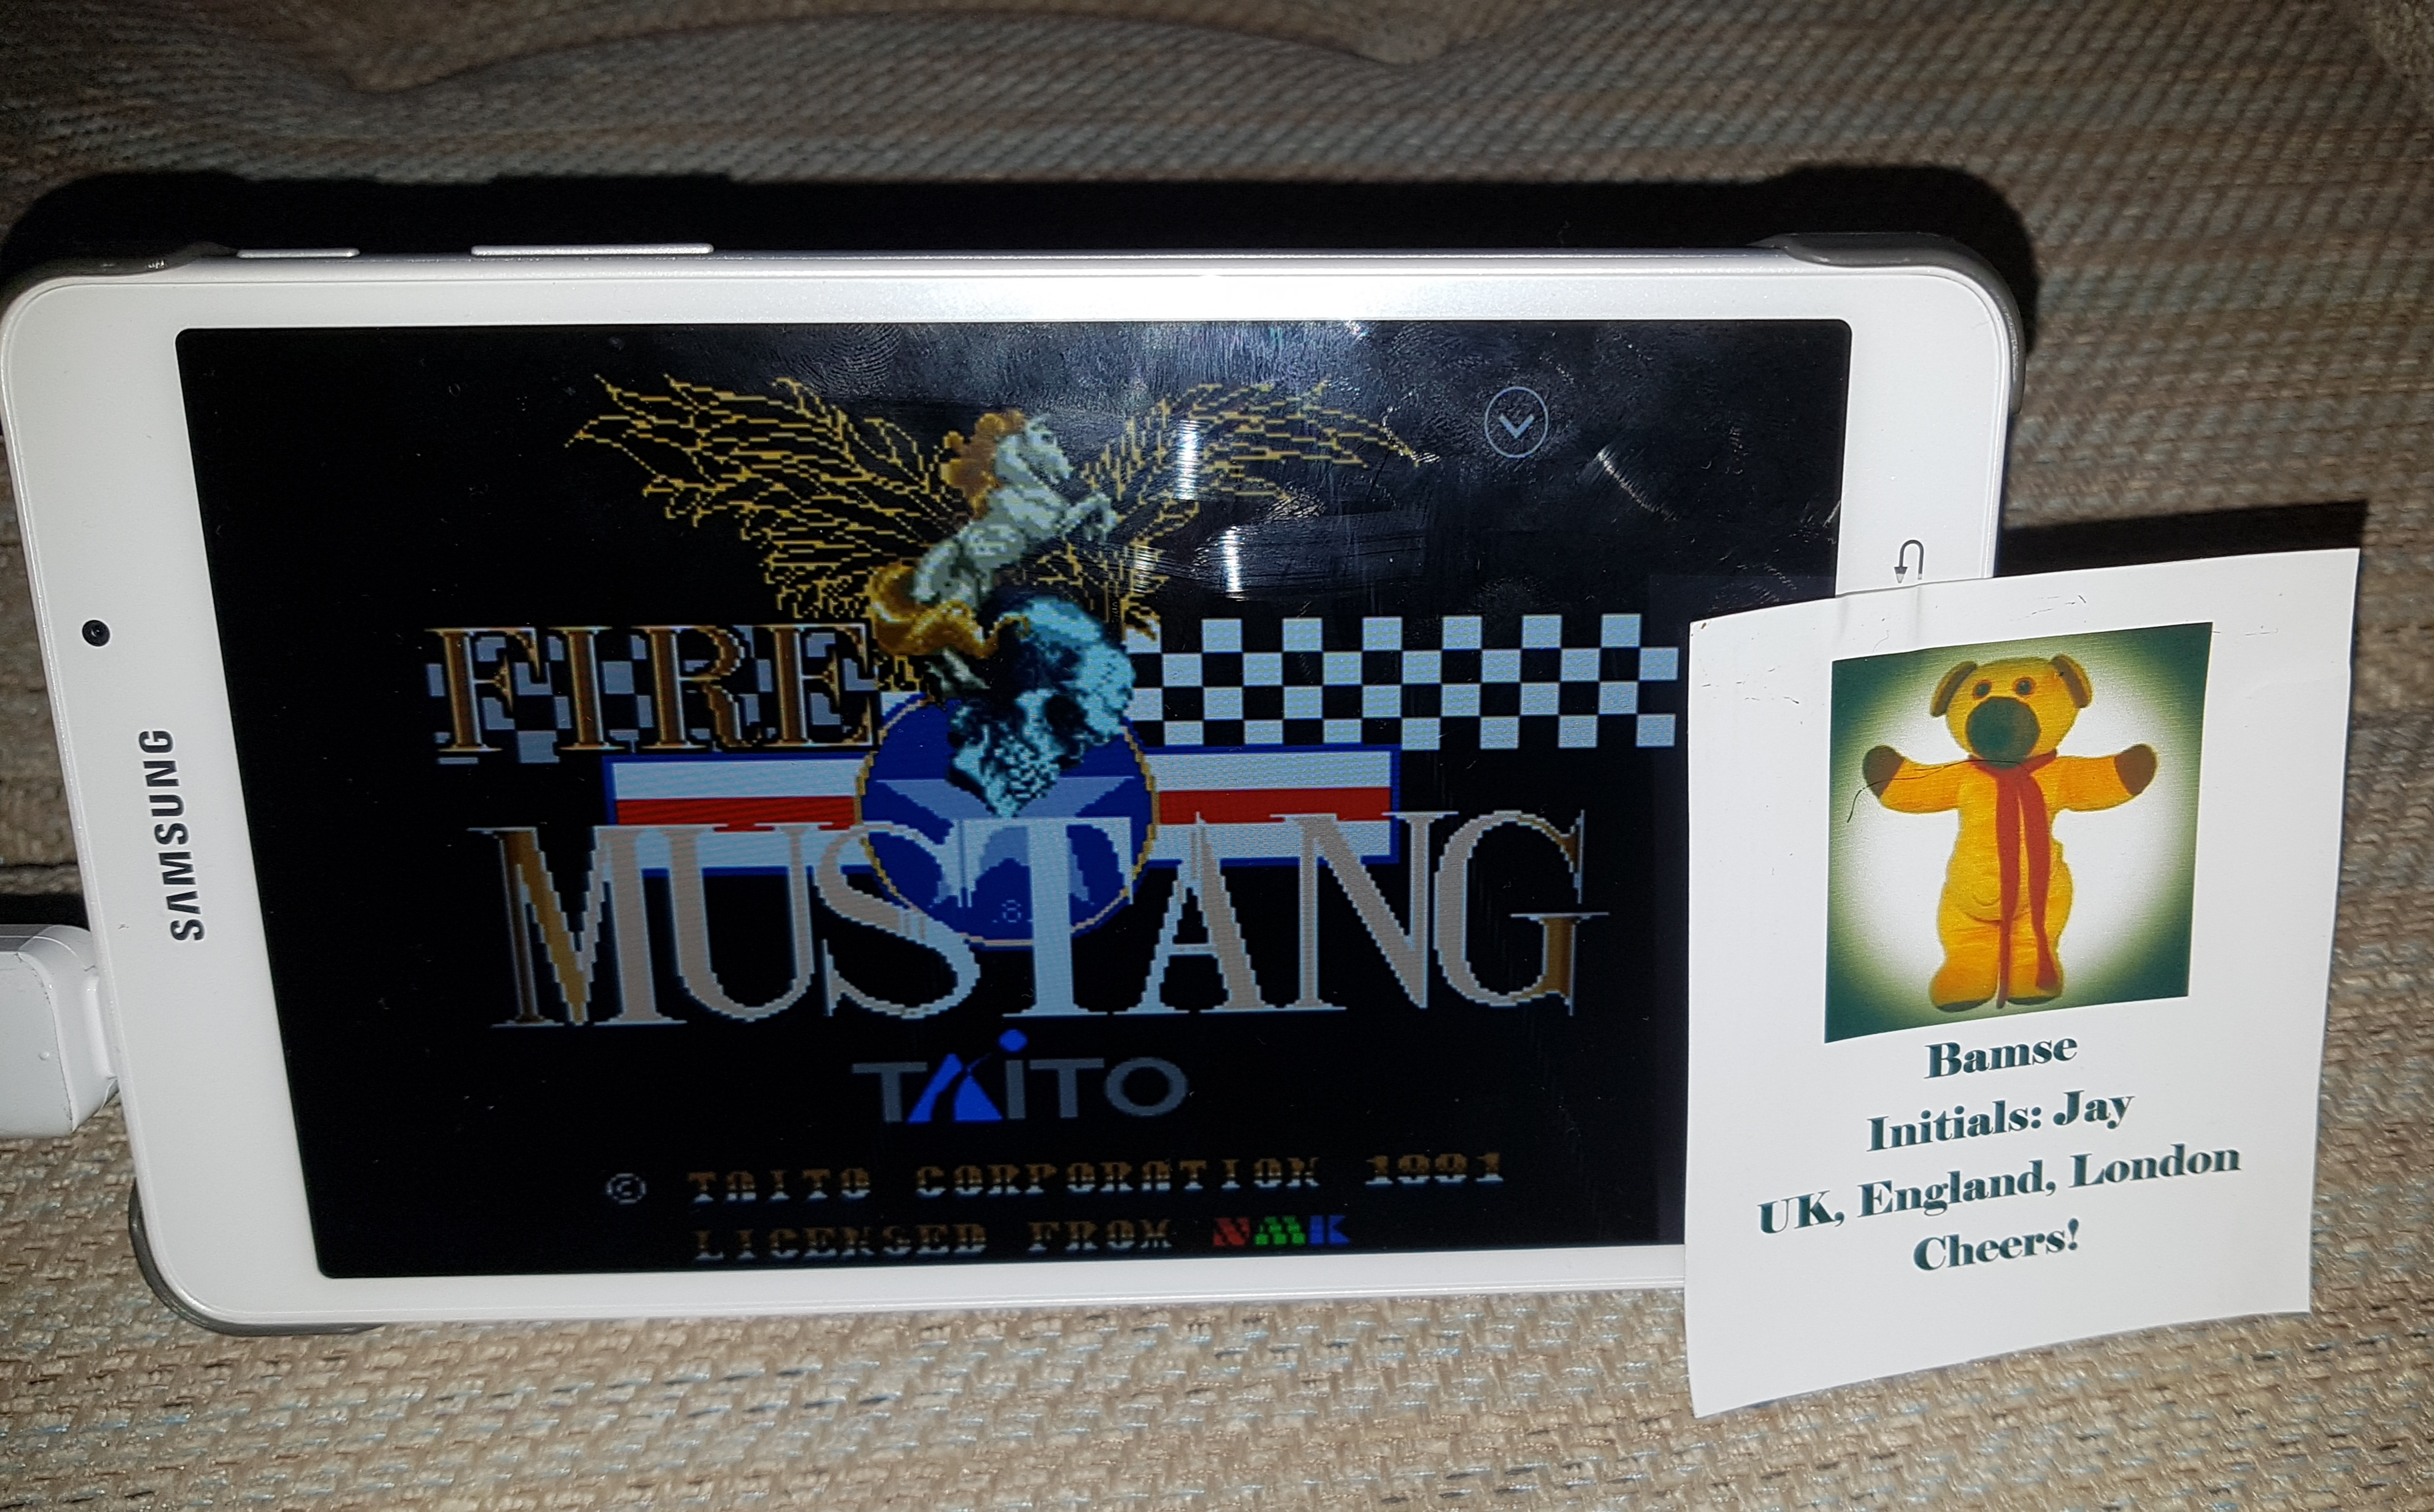 Bamse: Fire Mustang (Sega Genesis / MegaDrive Emulated) 84,200 points on 2019-04-16 13:57:39